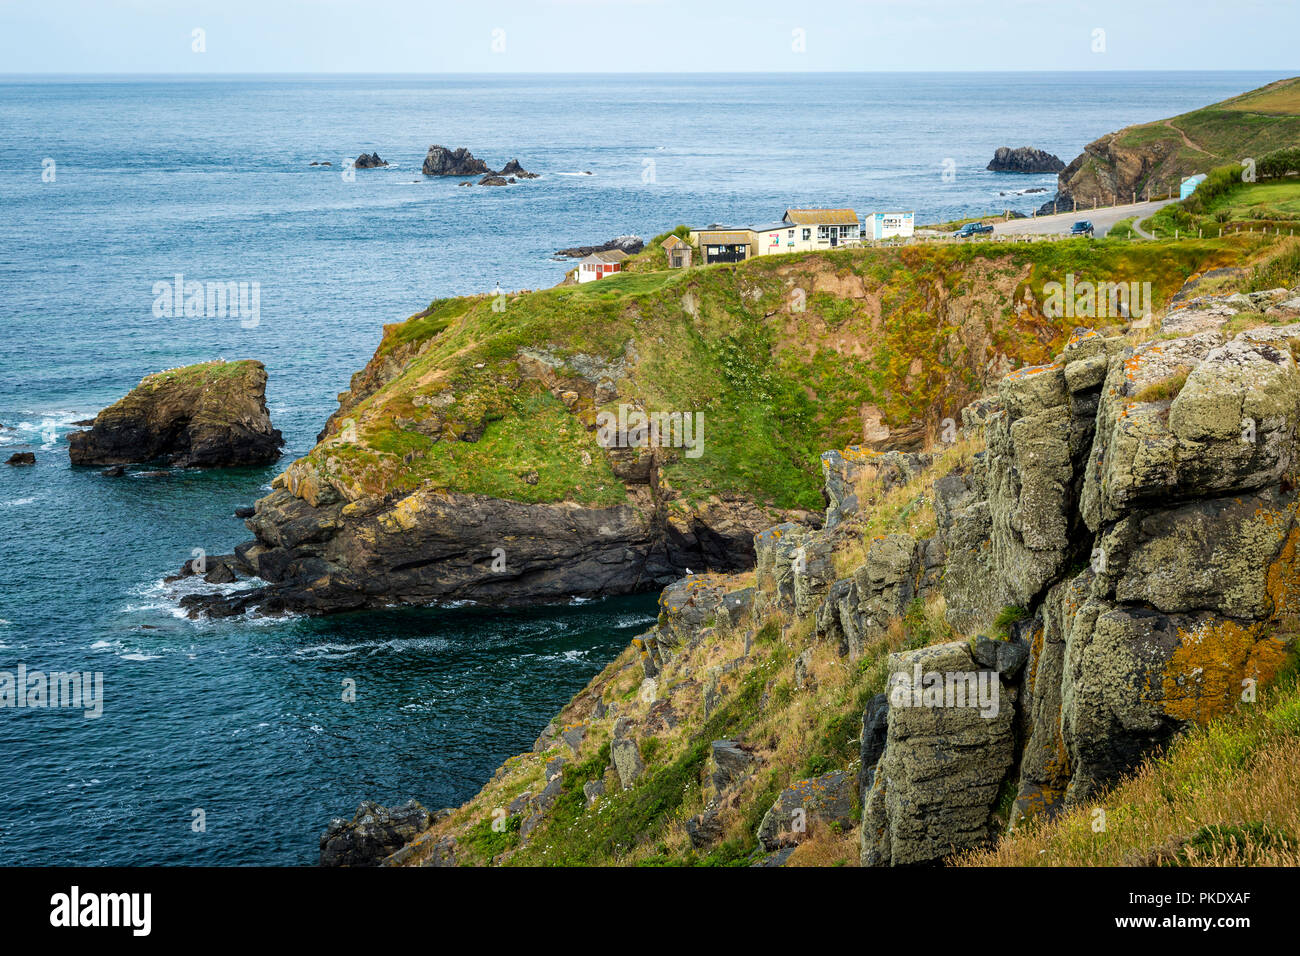 Lizard Point (the most southerly point in mainland Britain), Helston, Cornwall, England - Stock Image